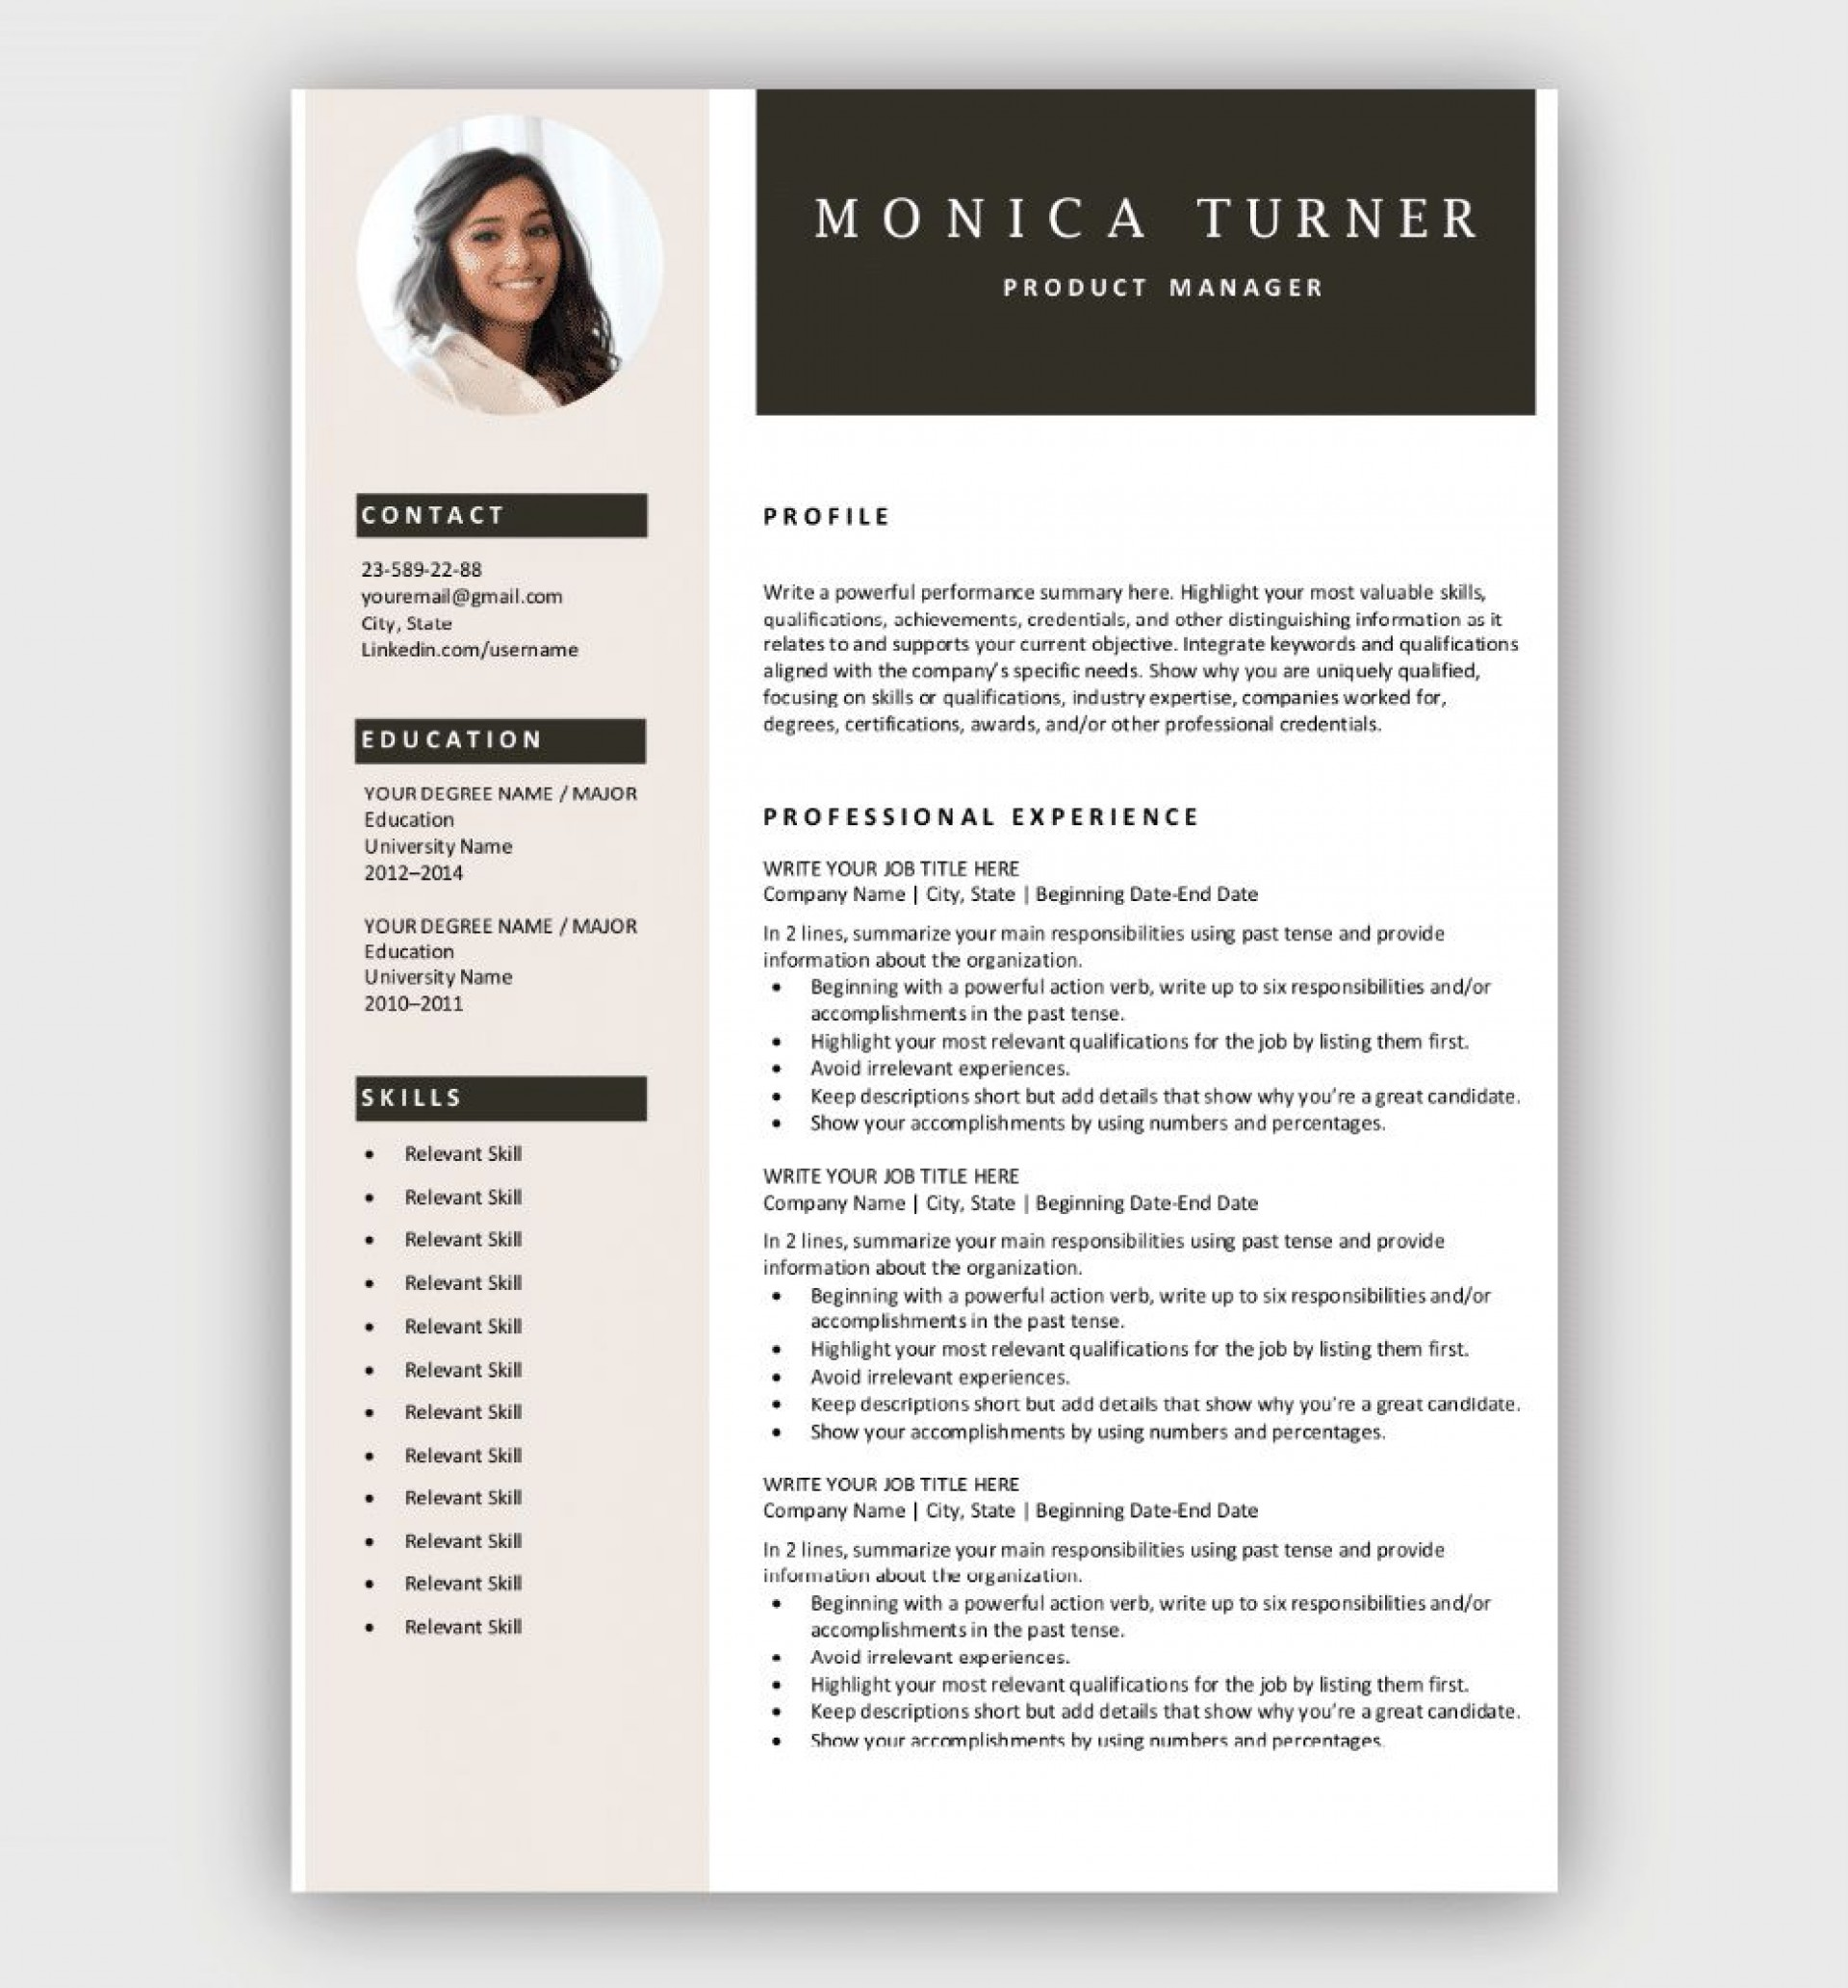 002 Dreaded Download Free Resume Template Image  Word Professional 2019 20201920